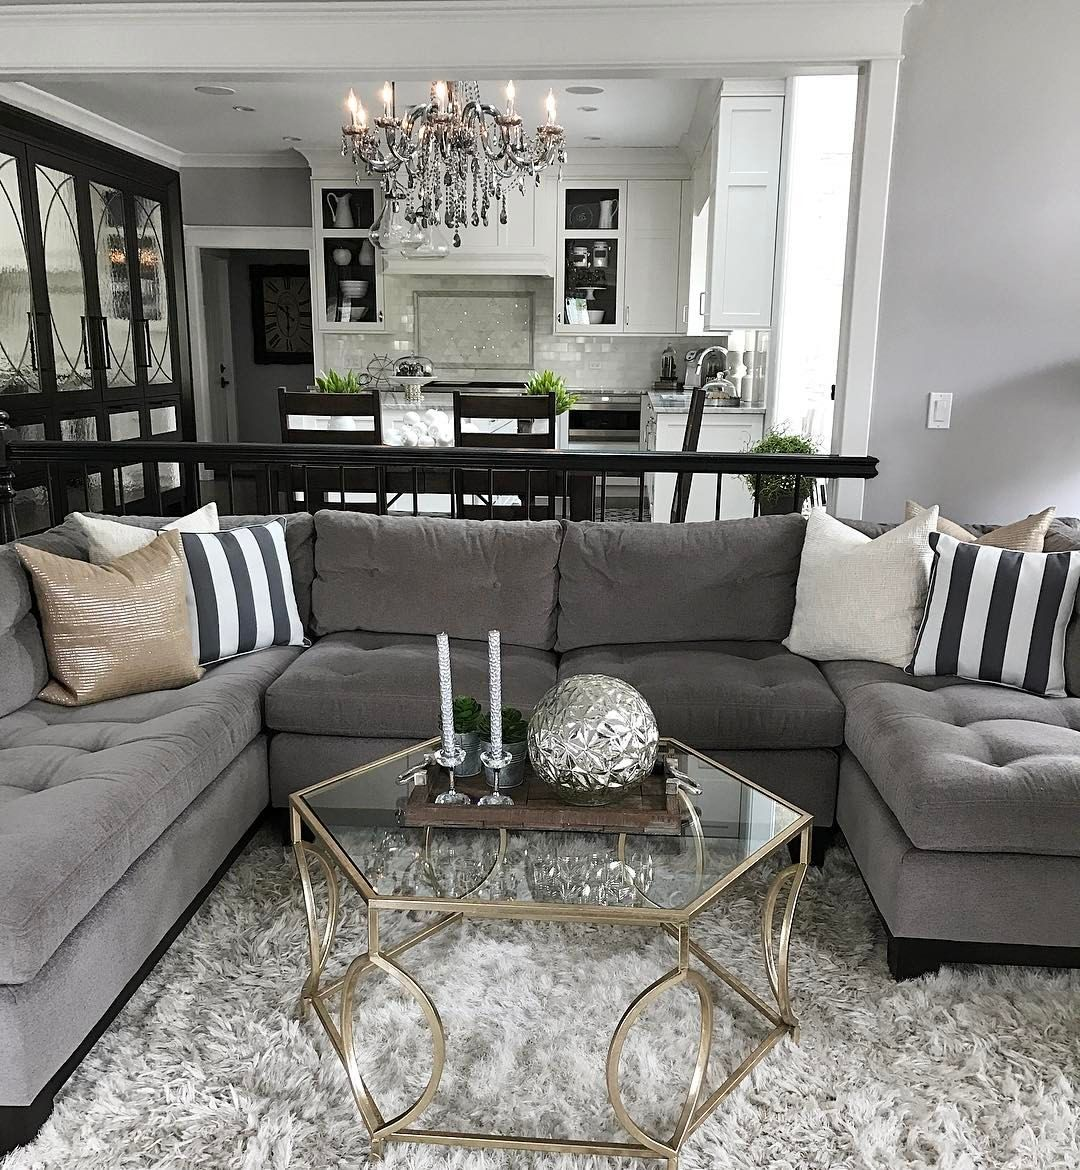 Change Up The Gray Couch With And Chic Black And White Striped Accents For The Home In 2019